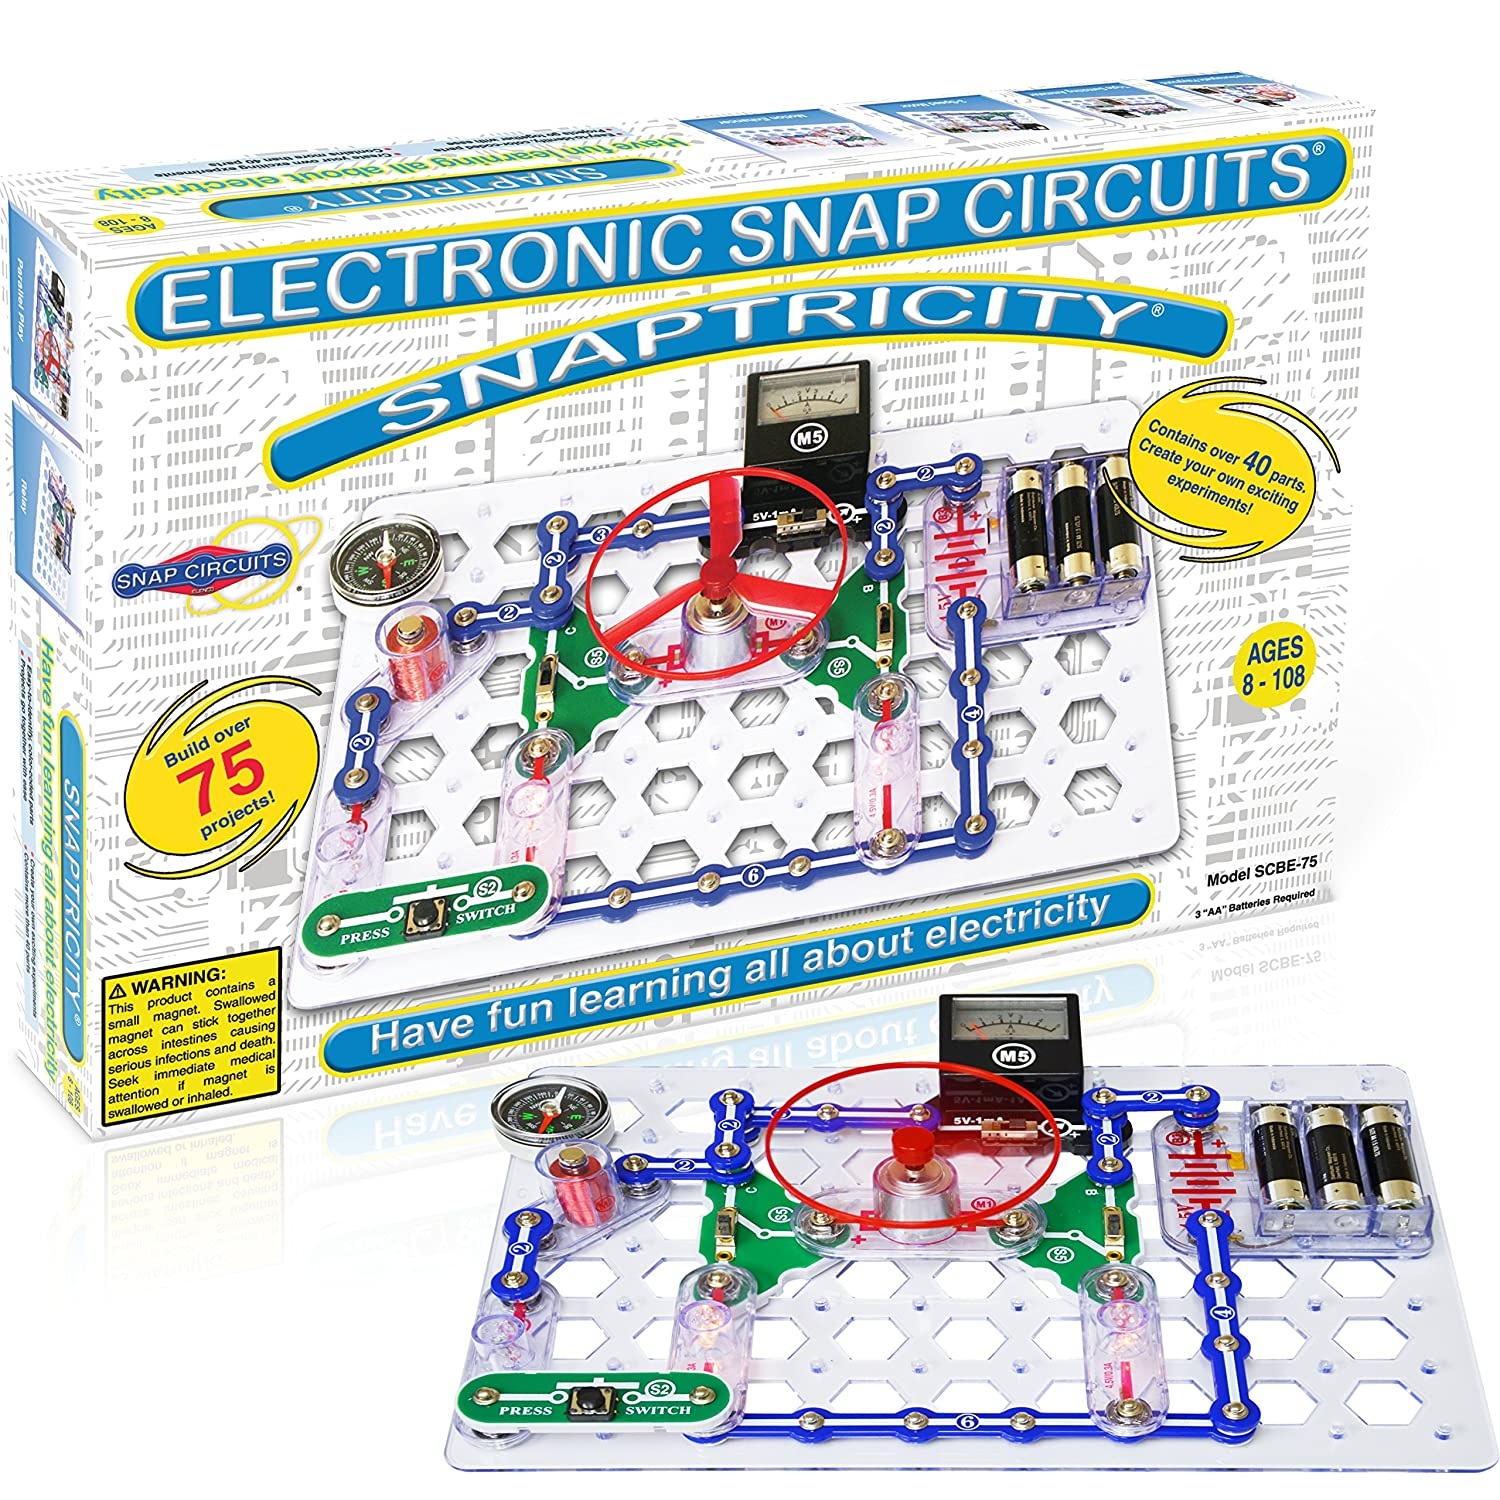 Snap Circuits Snaptricity Electronics Exploration Kit Simple Series And Parallel Let Over 75 Stem Projects 4 Color Project Manual 40 Modules Unlimited Fun Toys